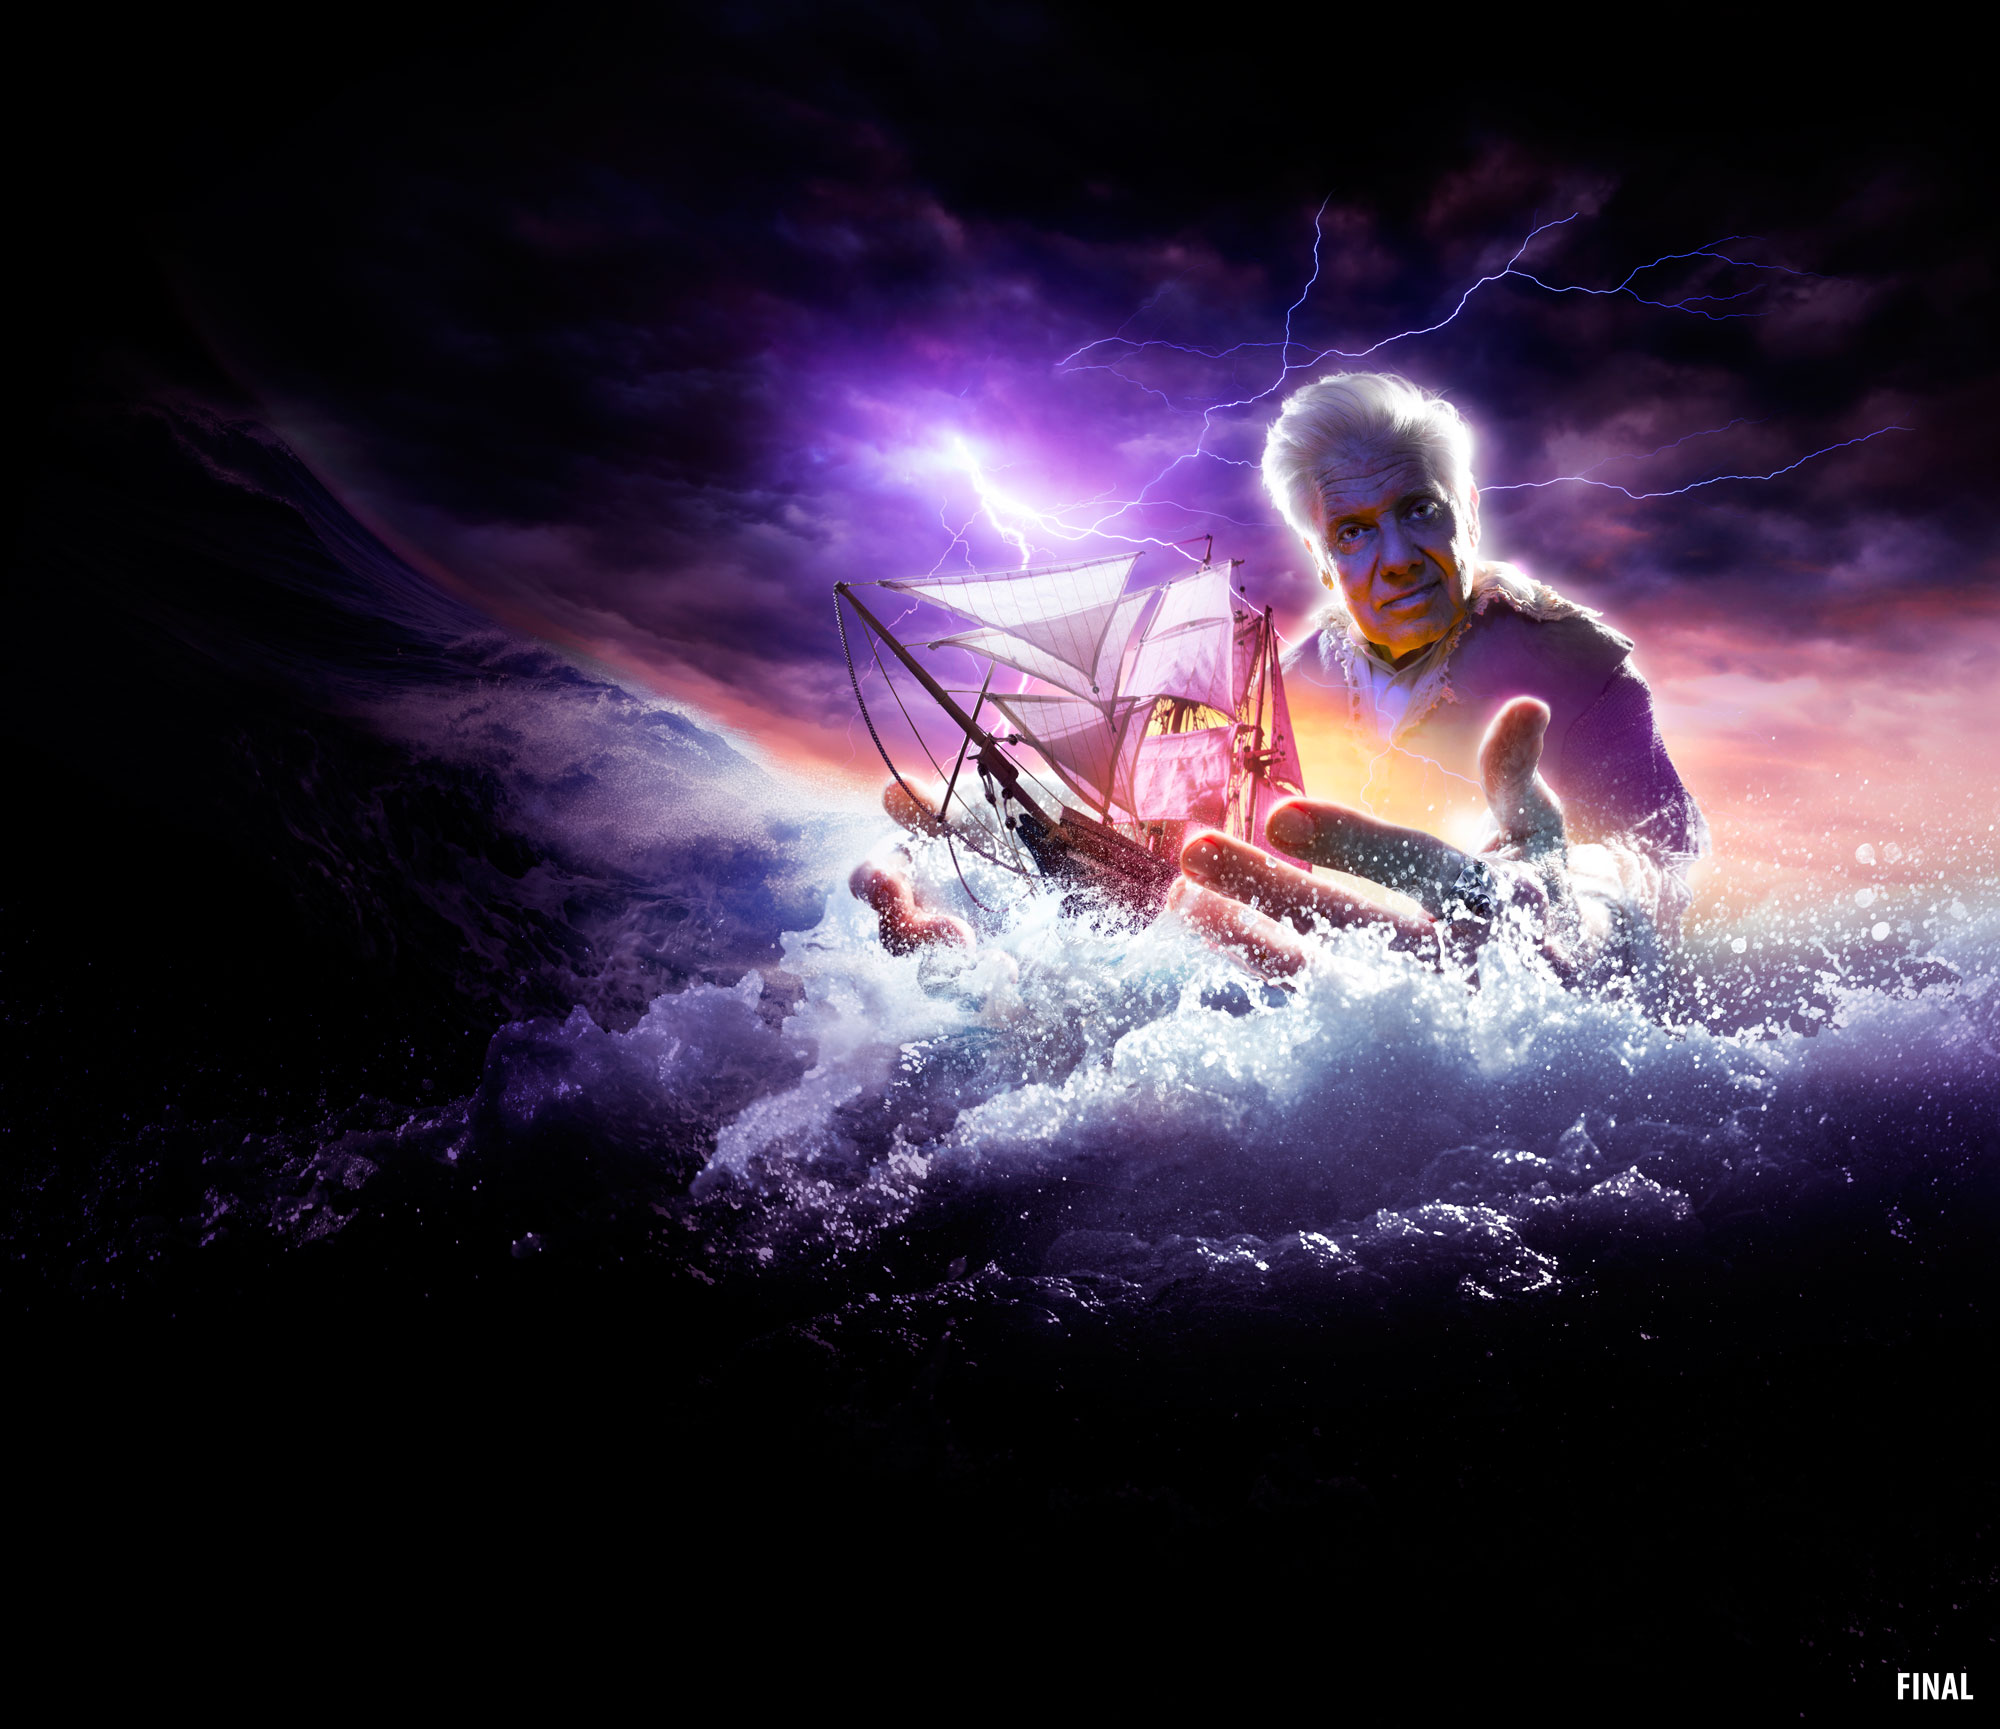 composite imagery photo of man overlooking sea holding boat in storm